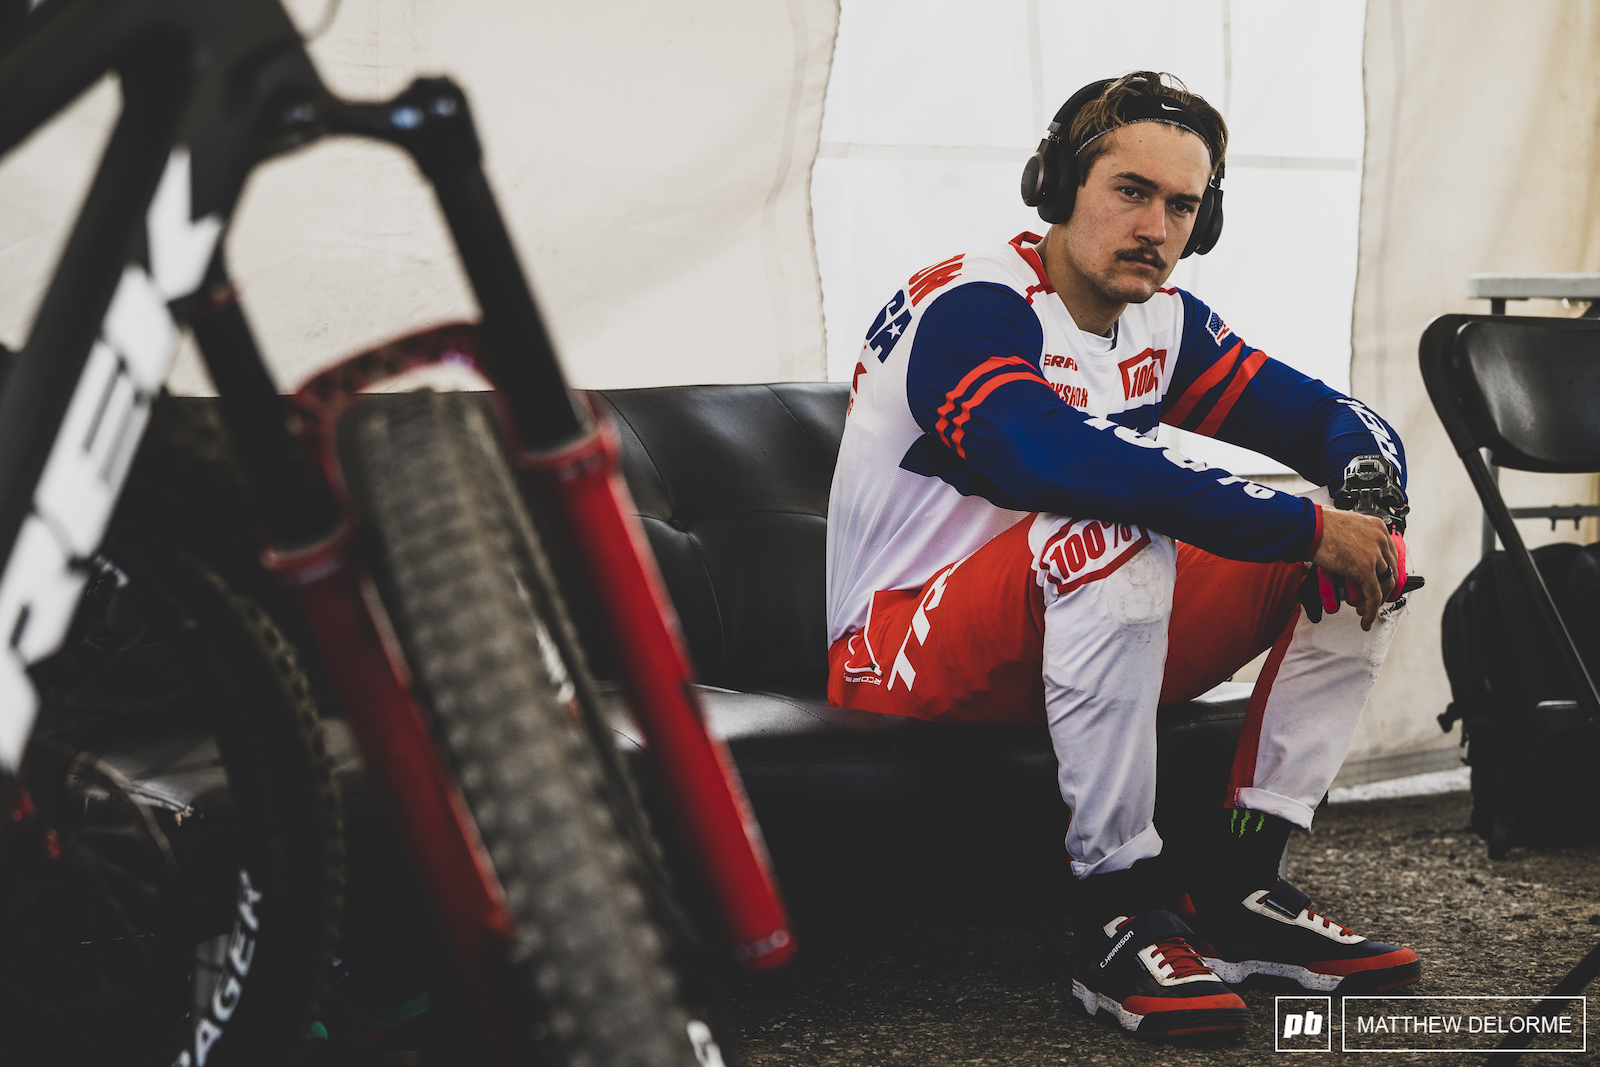 Charlie Harrison awaits the final morning practice session.